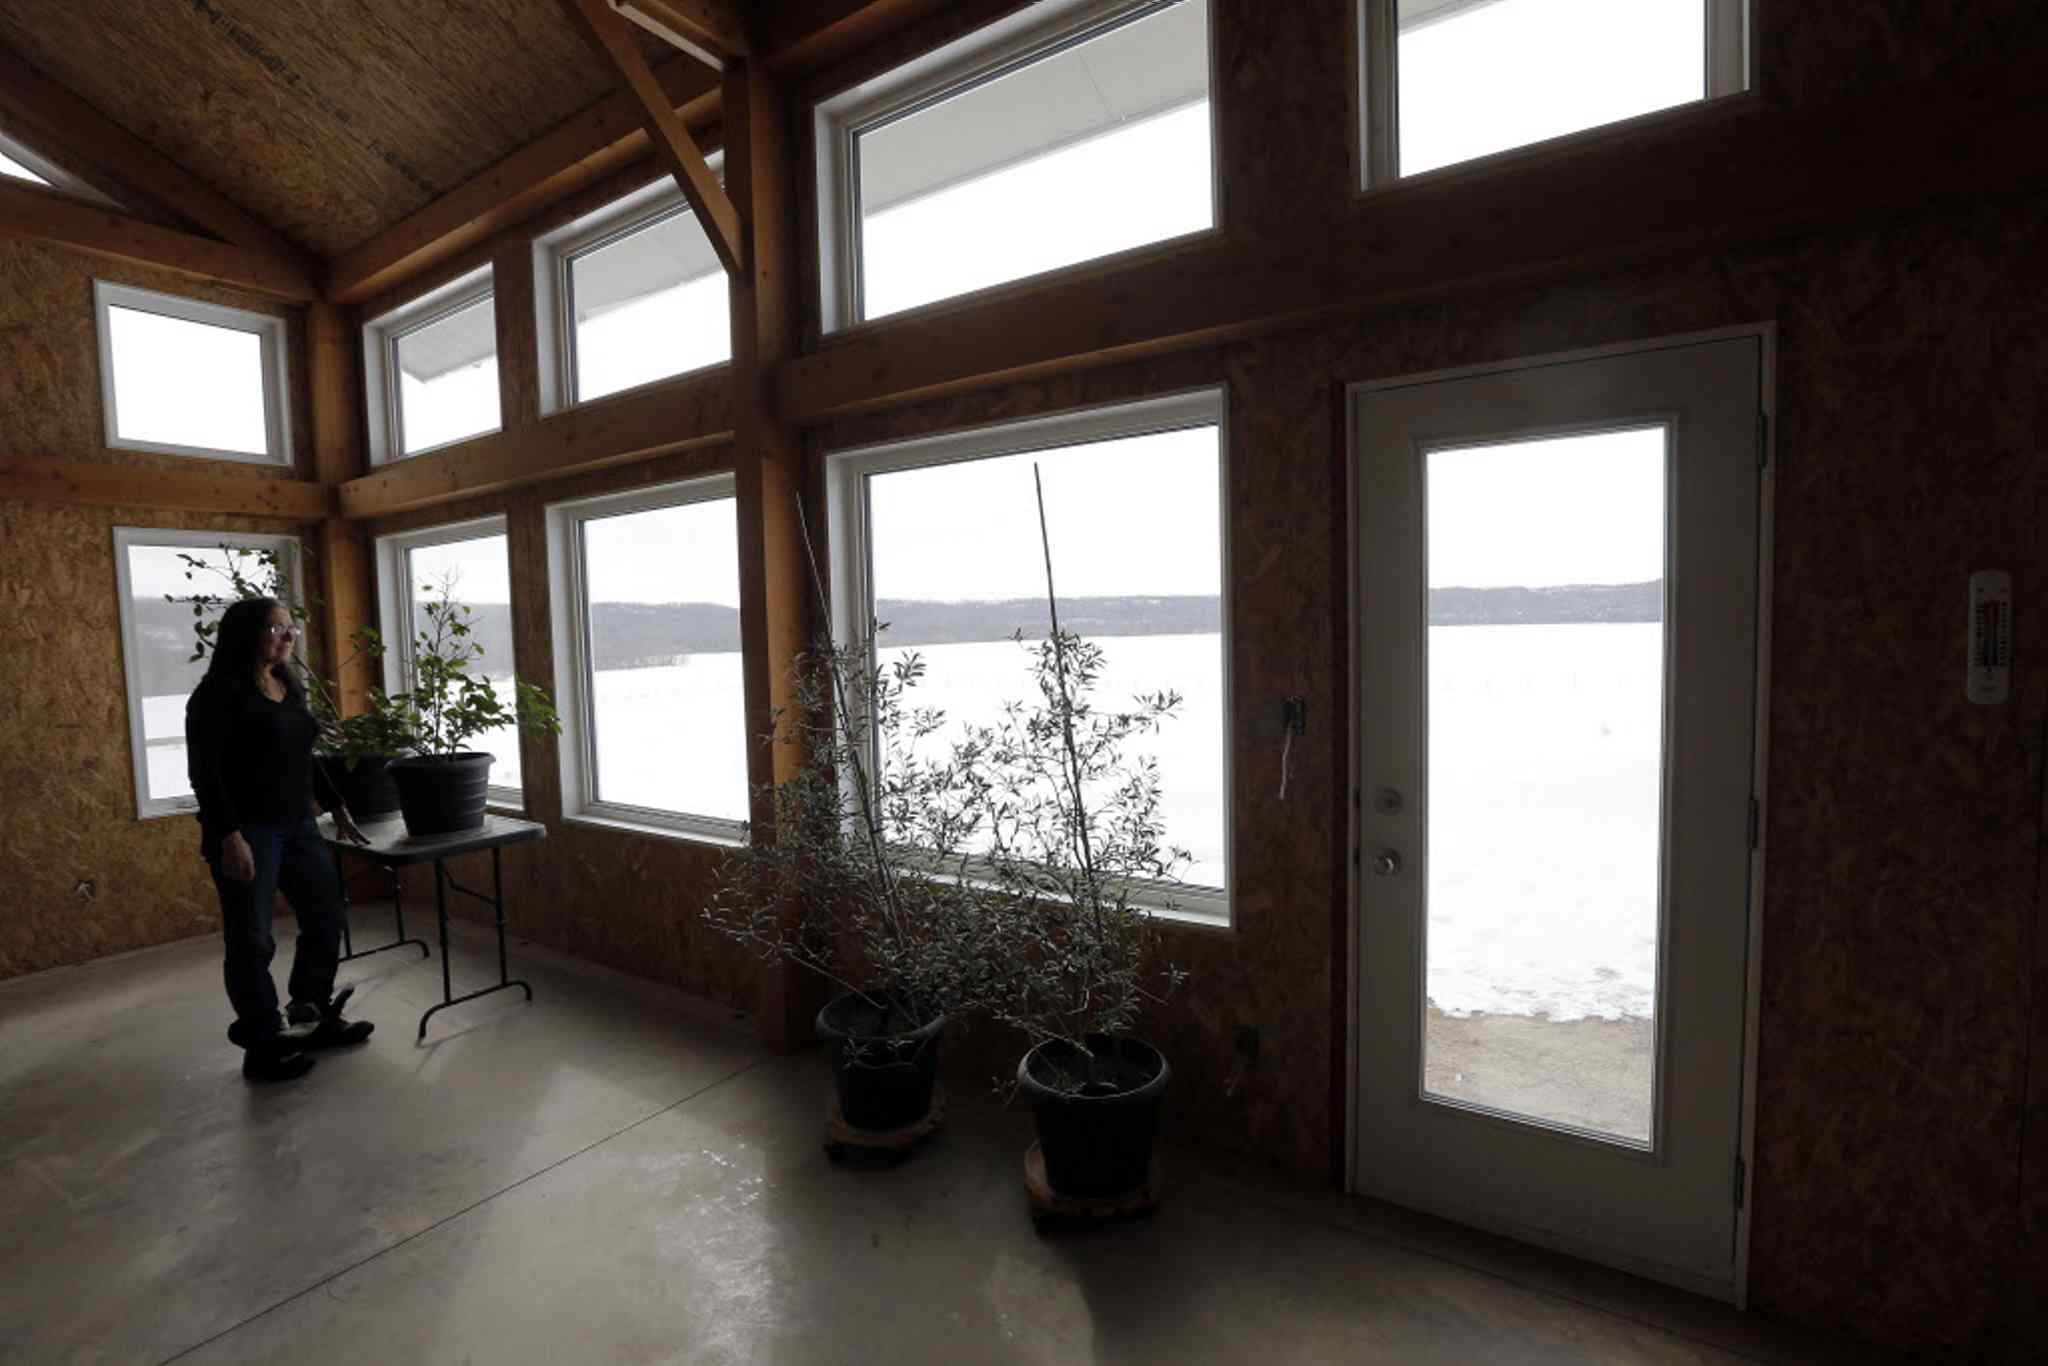 Bev Eert has a few plants growing in the unfinished house. There are lots of south-east facing windows looking out over their large lot on the Assiniboine River.